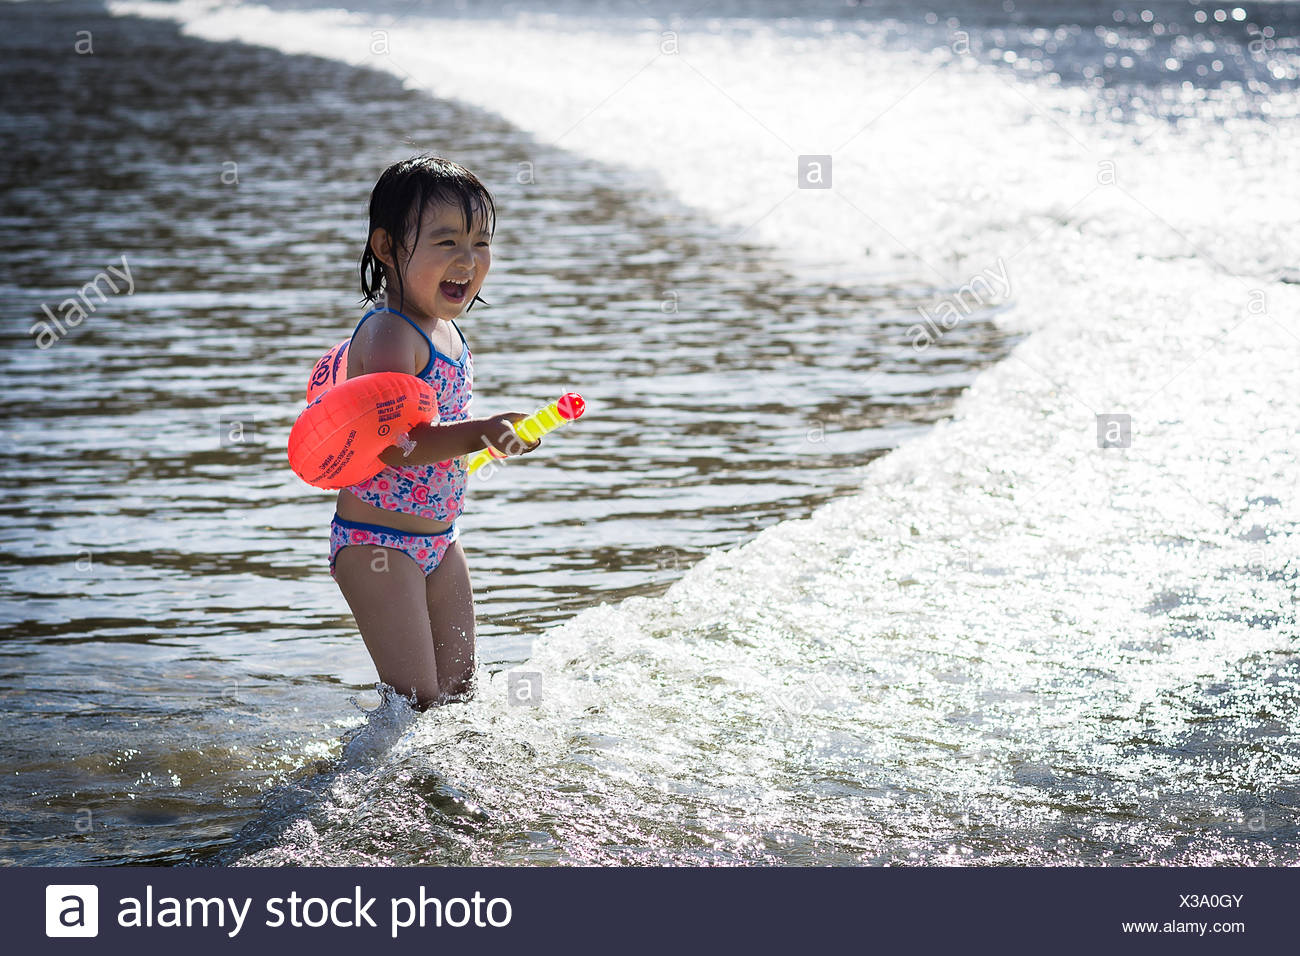 Girl wearing swimming suit and red water wings playing in rippled sea - Stock Image